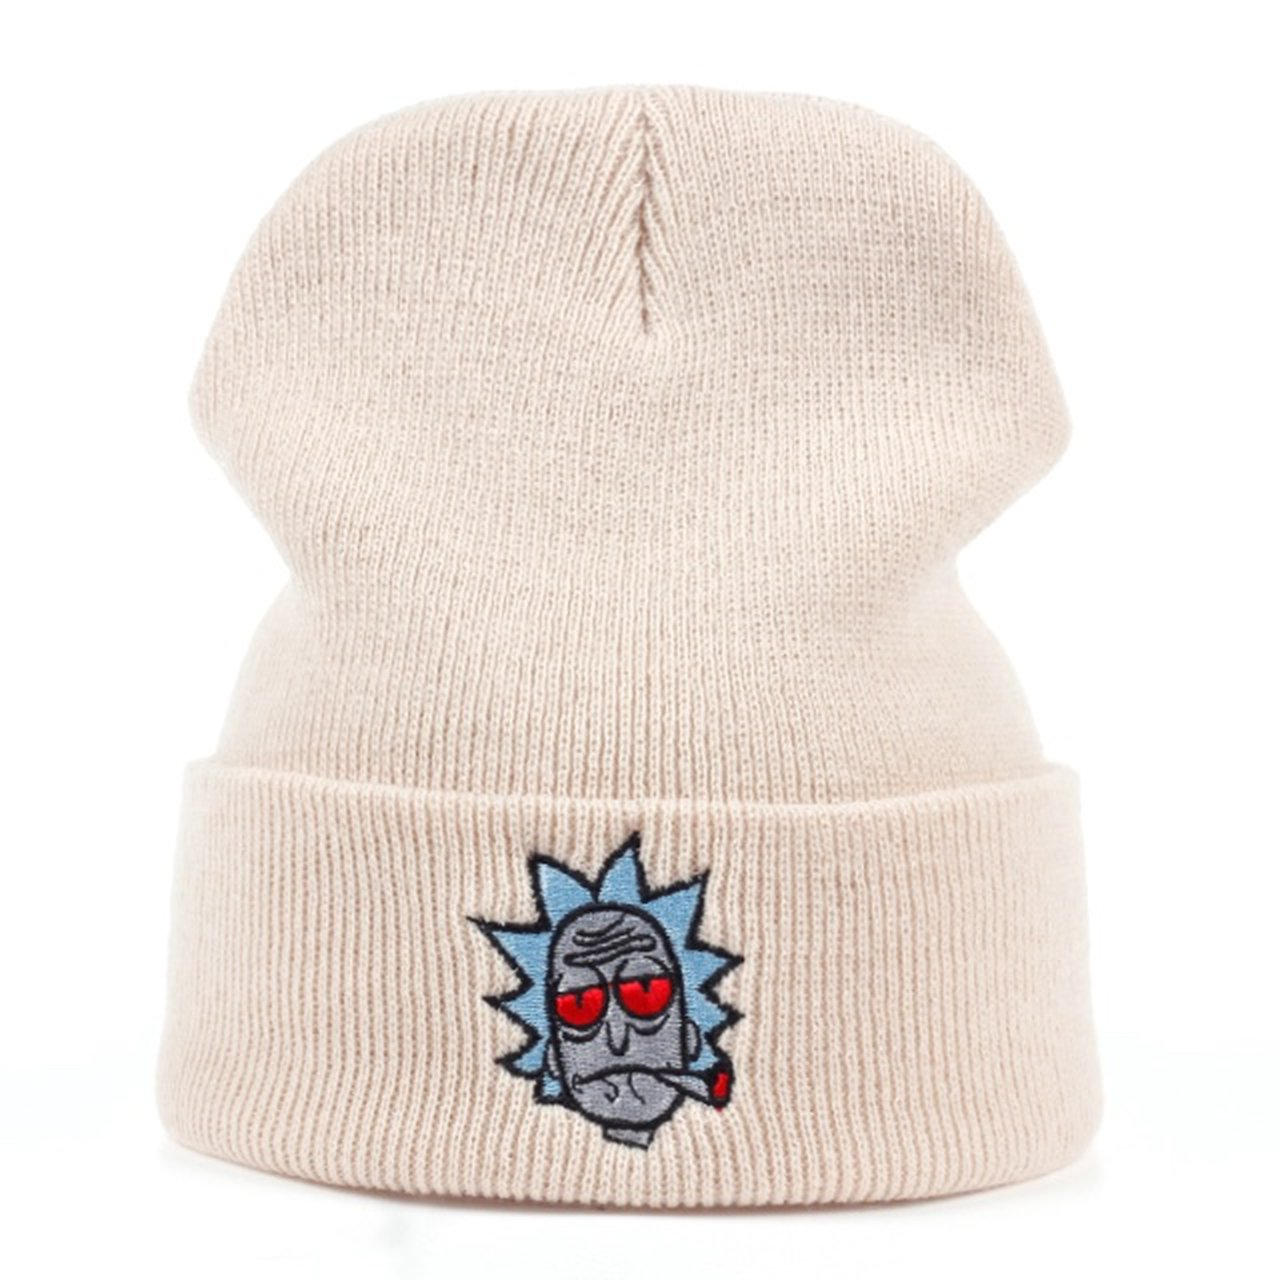 Rick and morty beanie Rick with a j stoned One size comfy 2 - Depop 3ba4cbd61c5